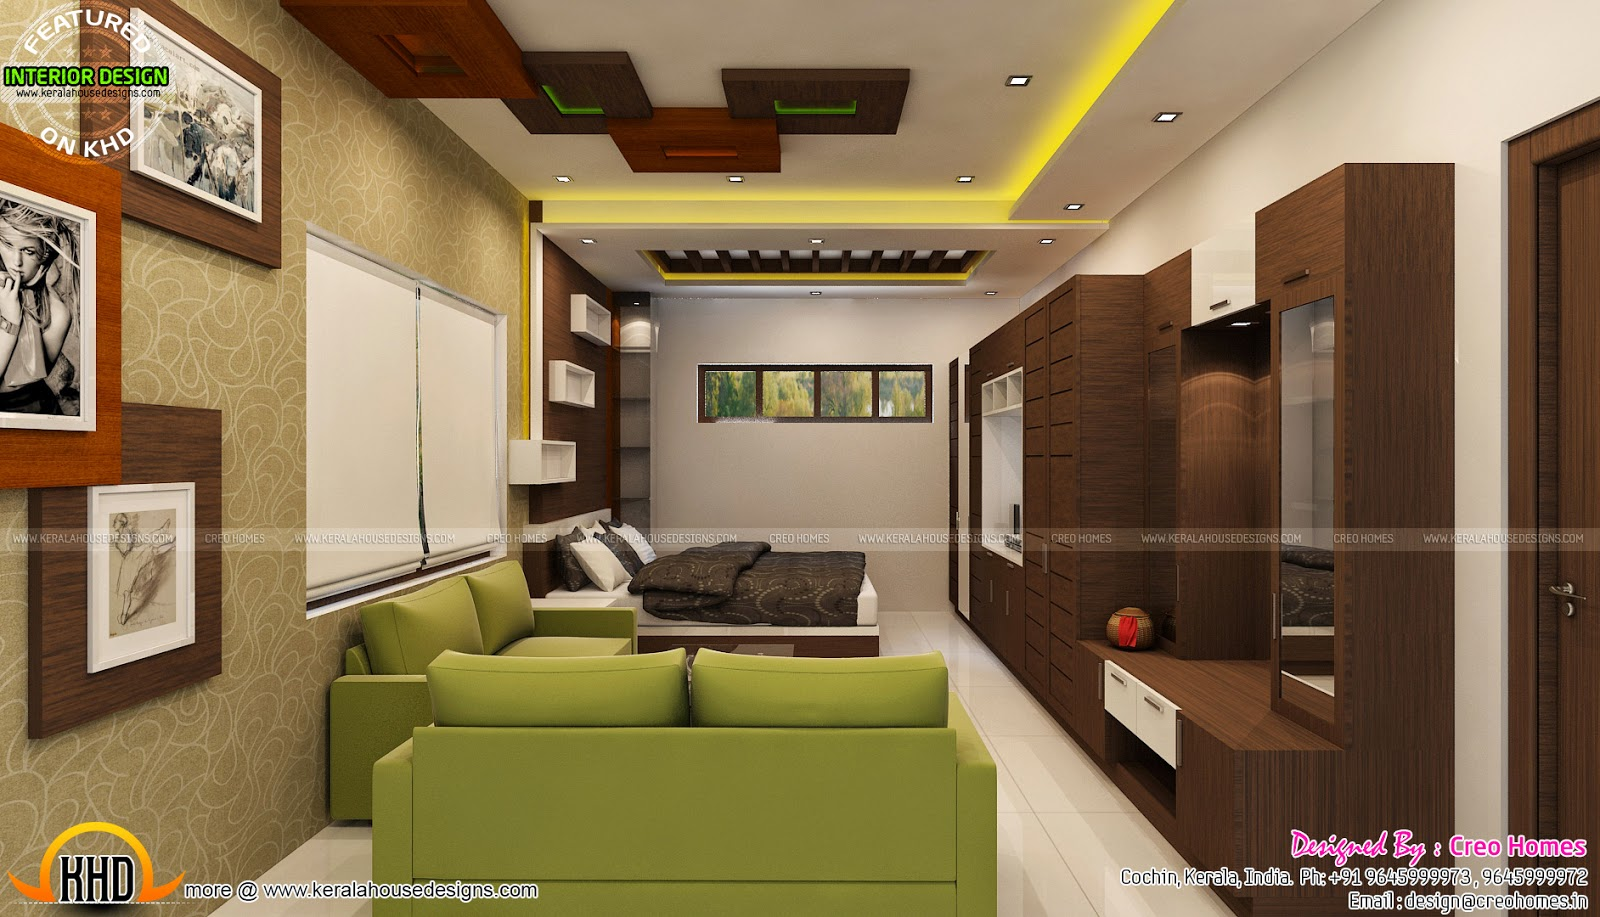 Living prayer kitchen interiors kerala home design and for Living room design ideas kerala